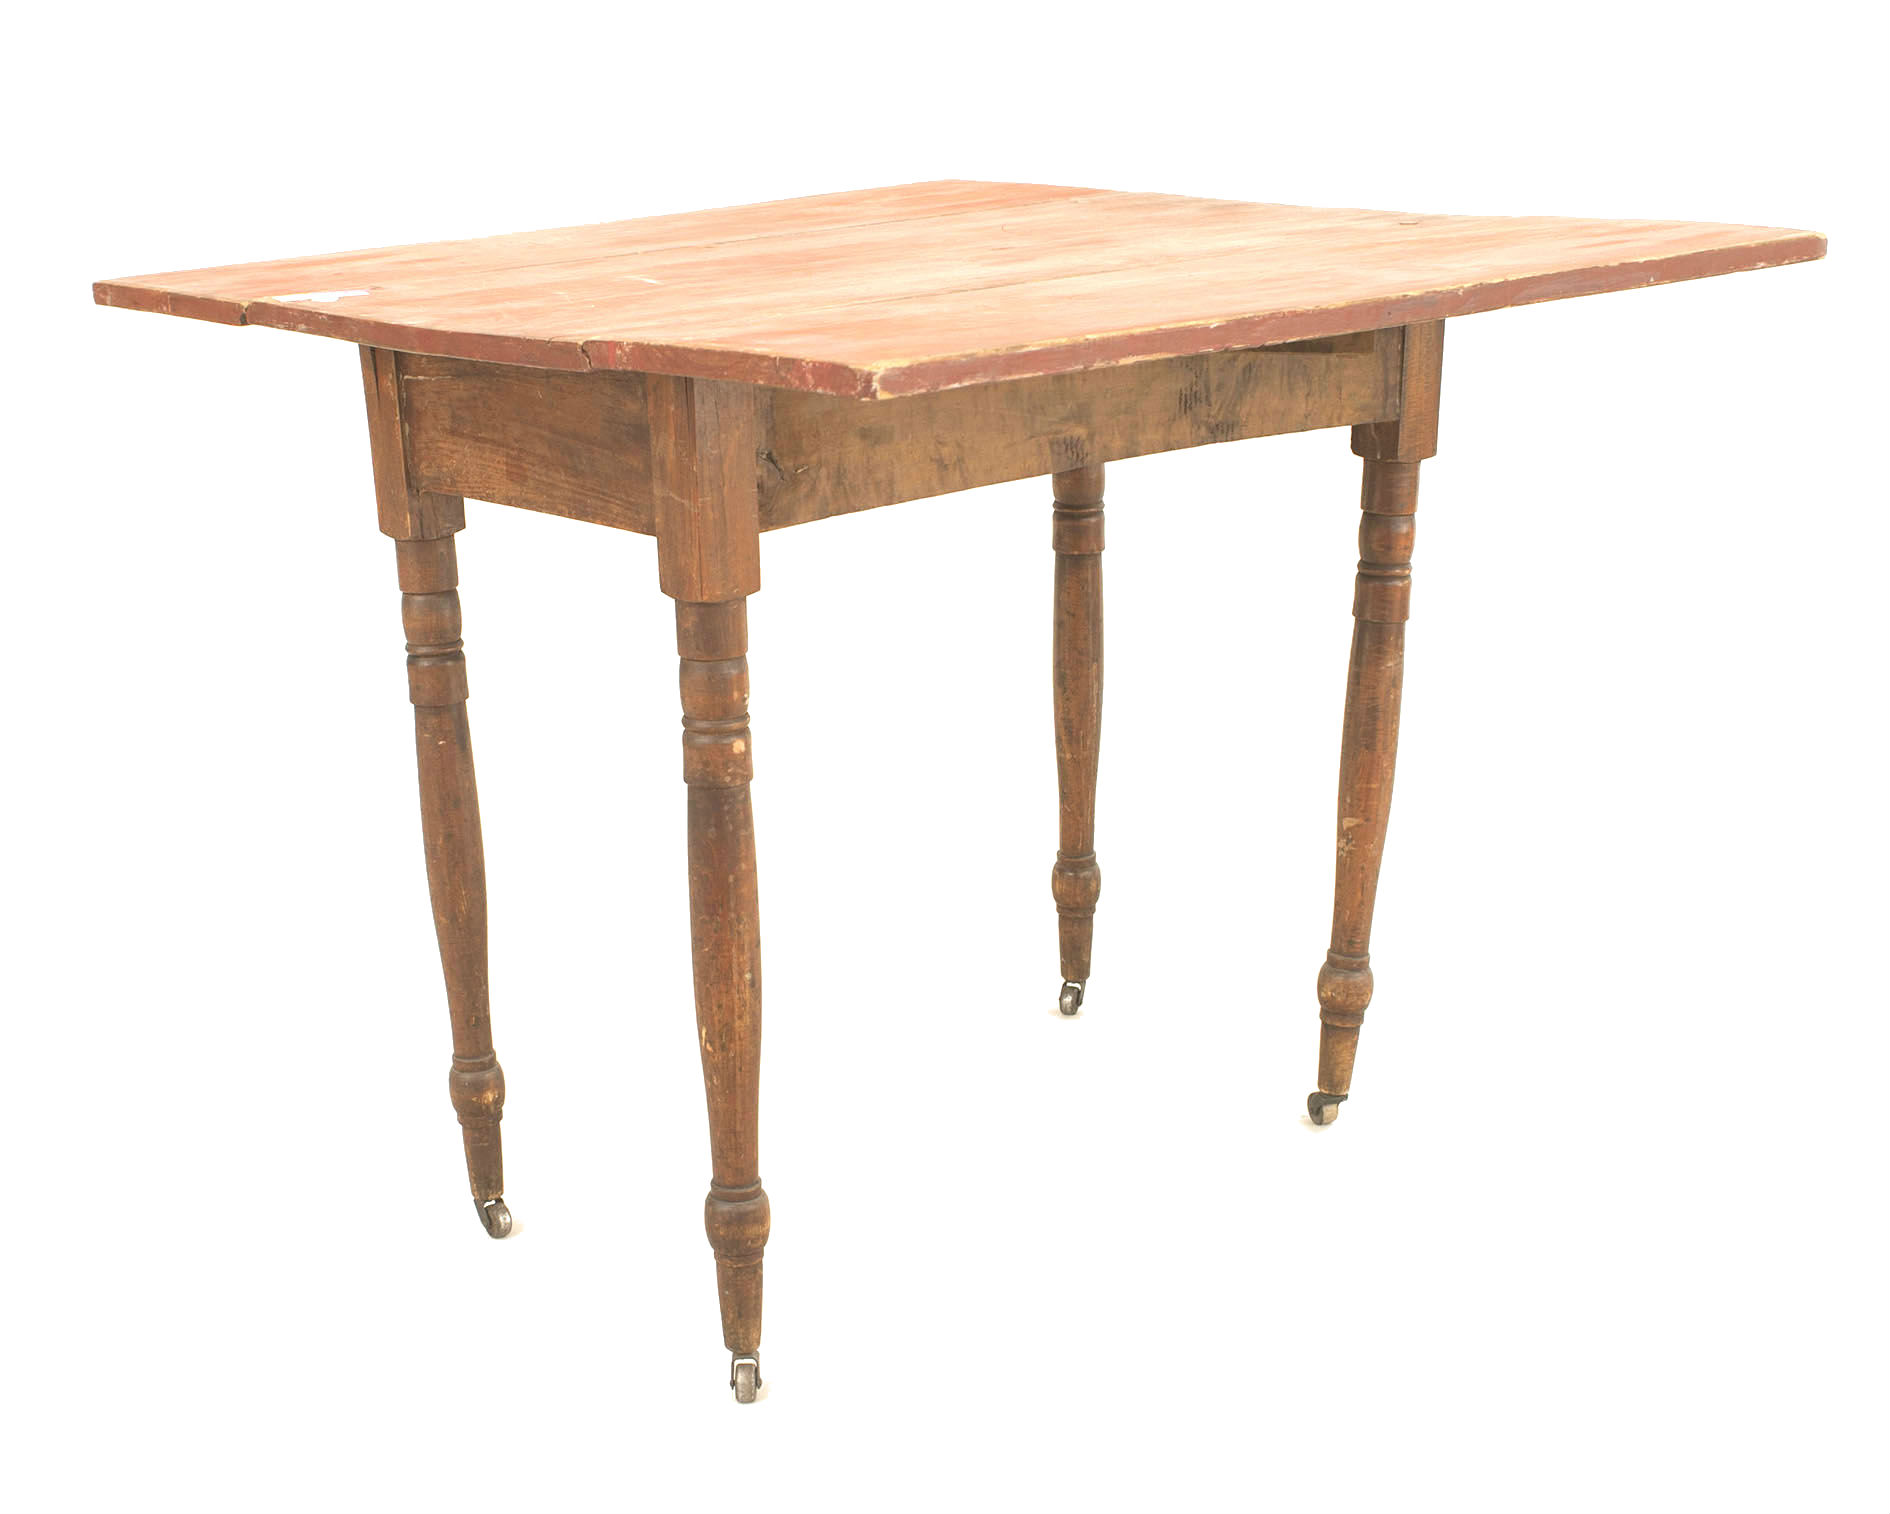 Surprising American Country Rustic Red Painted Drop Leaf Table Newel Bralicious Painted Fabric Chair Ideas Braliciousco